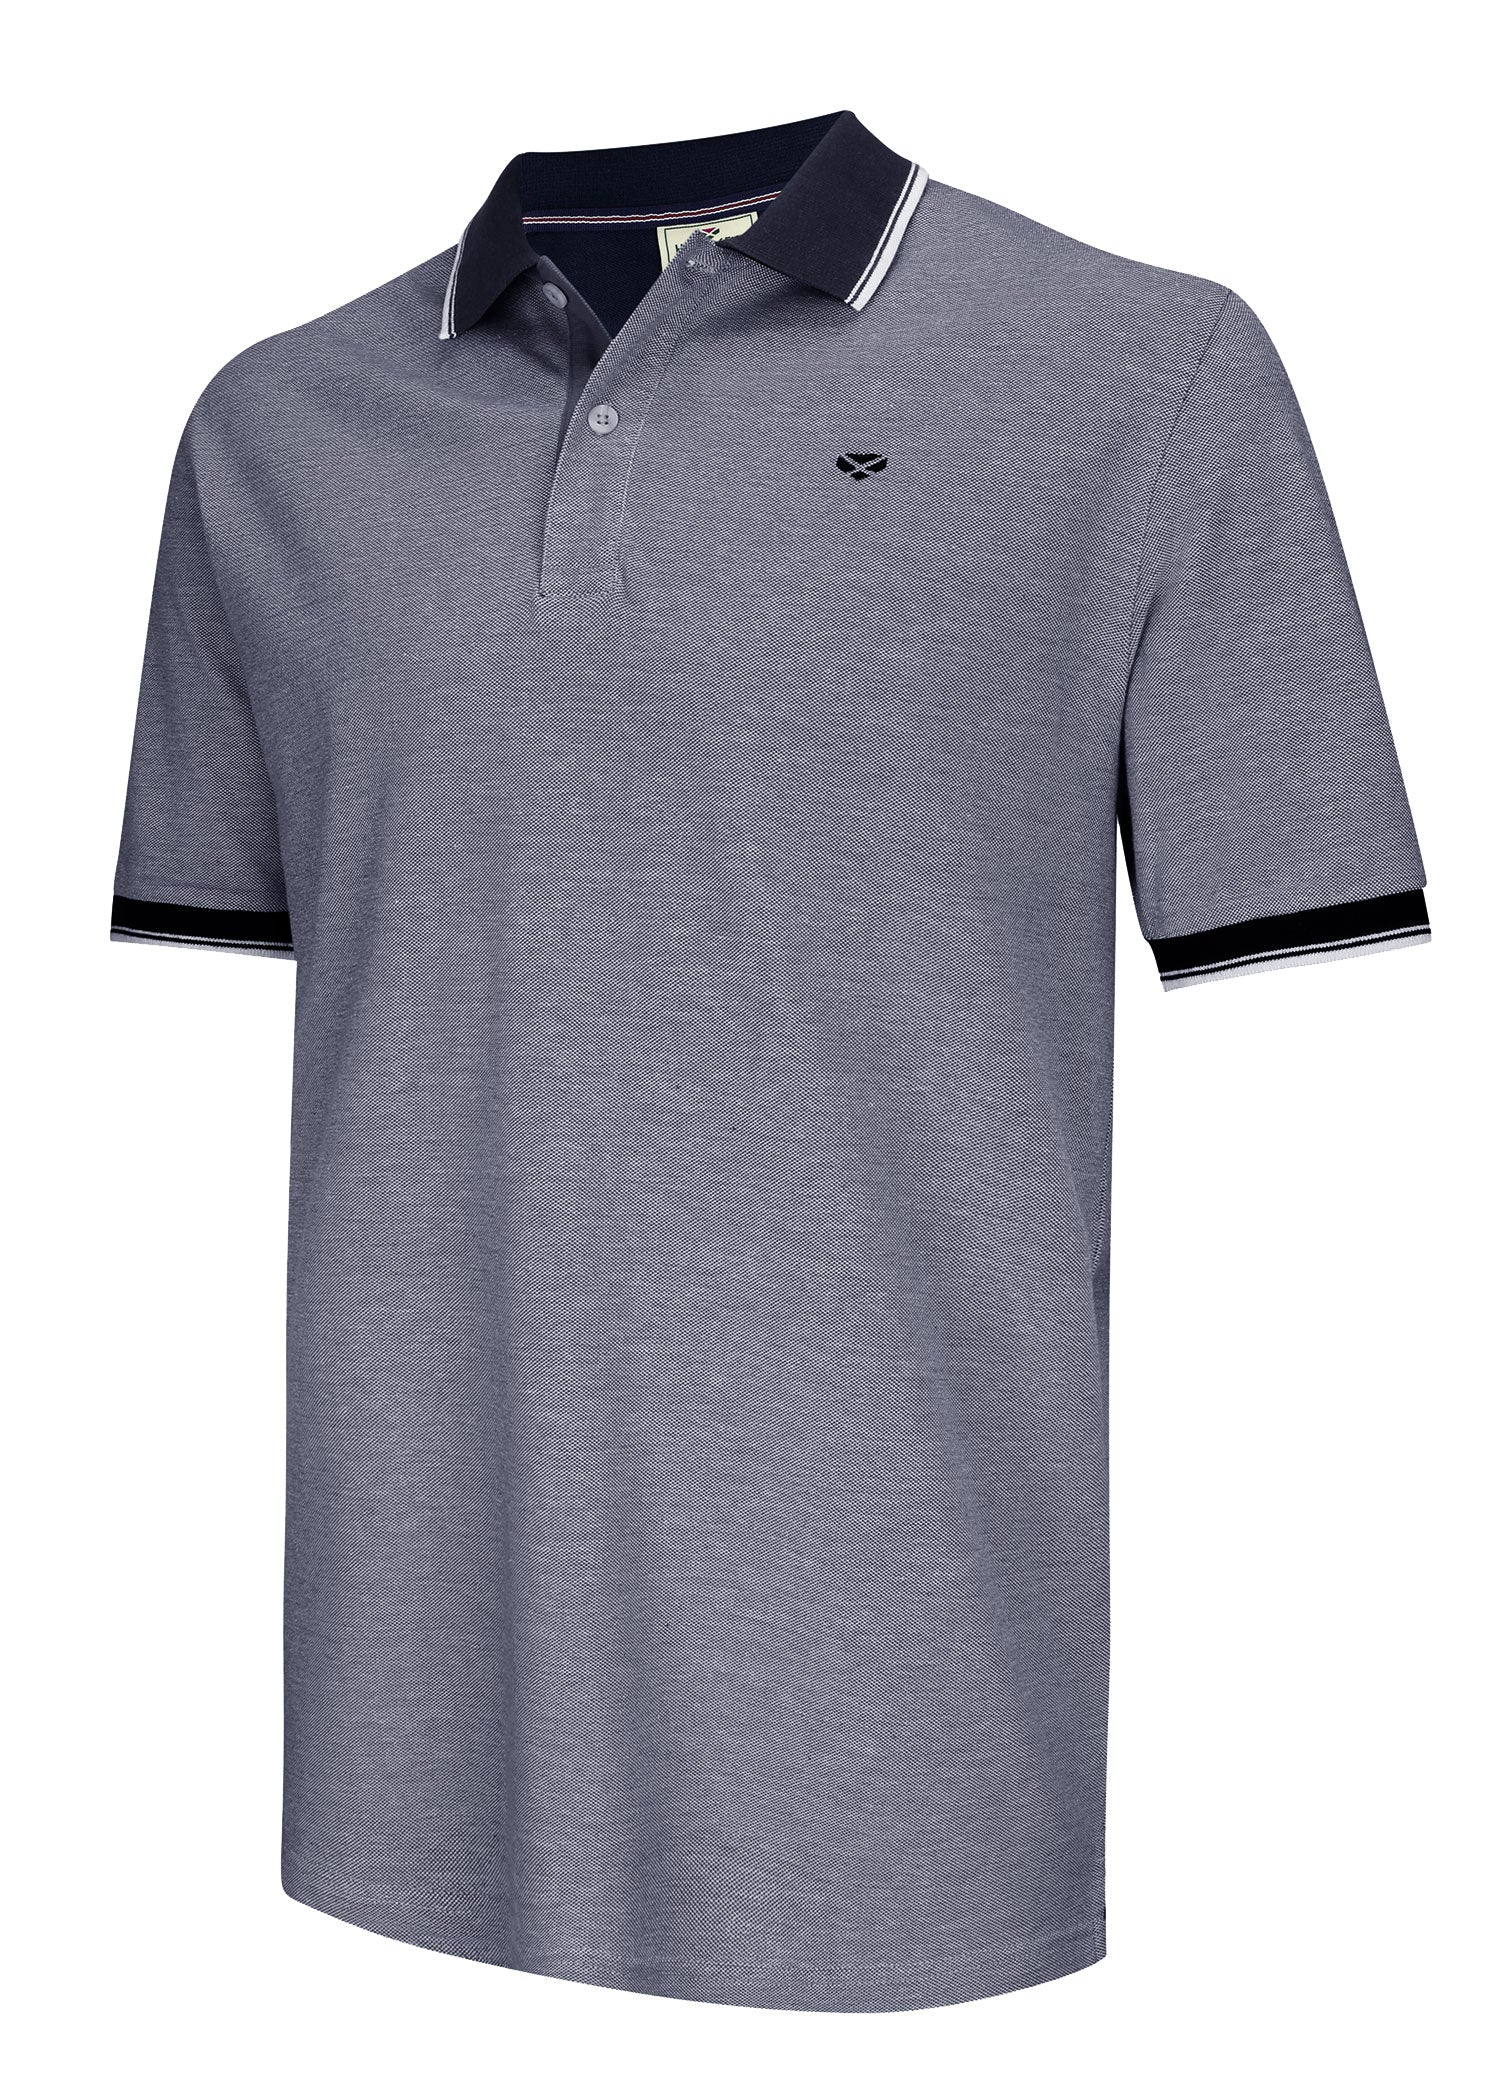 Navy Hoggs of Fife Kinghorn Polo Shirt